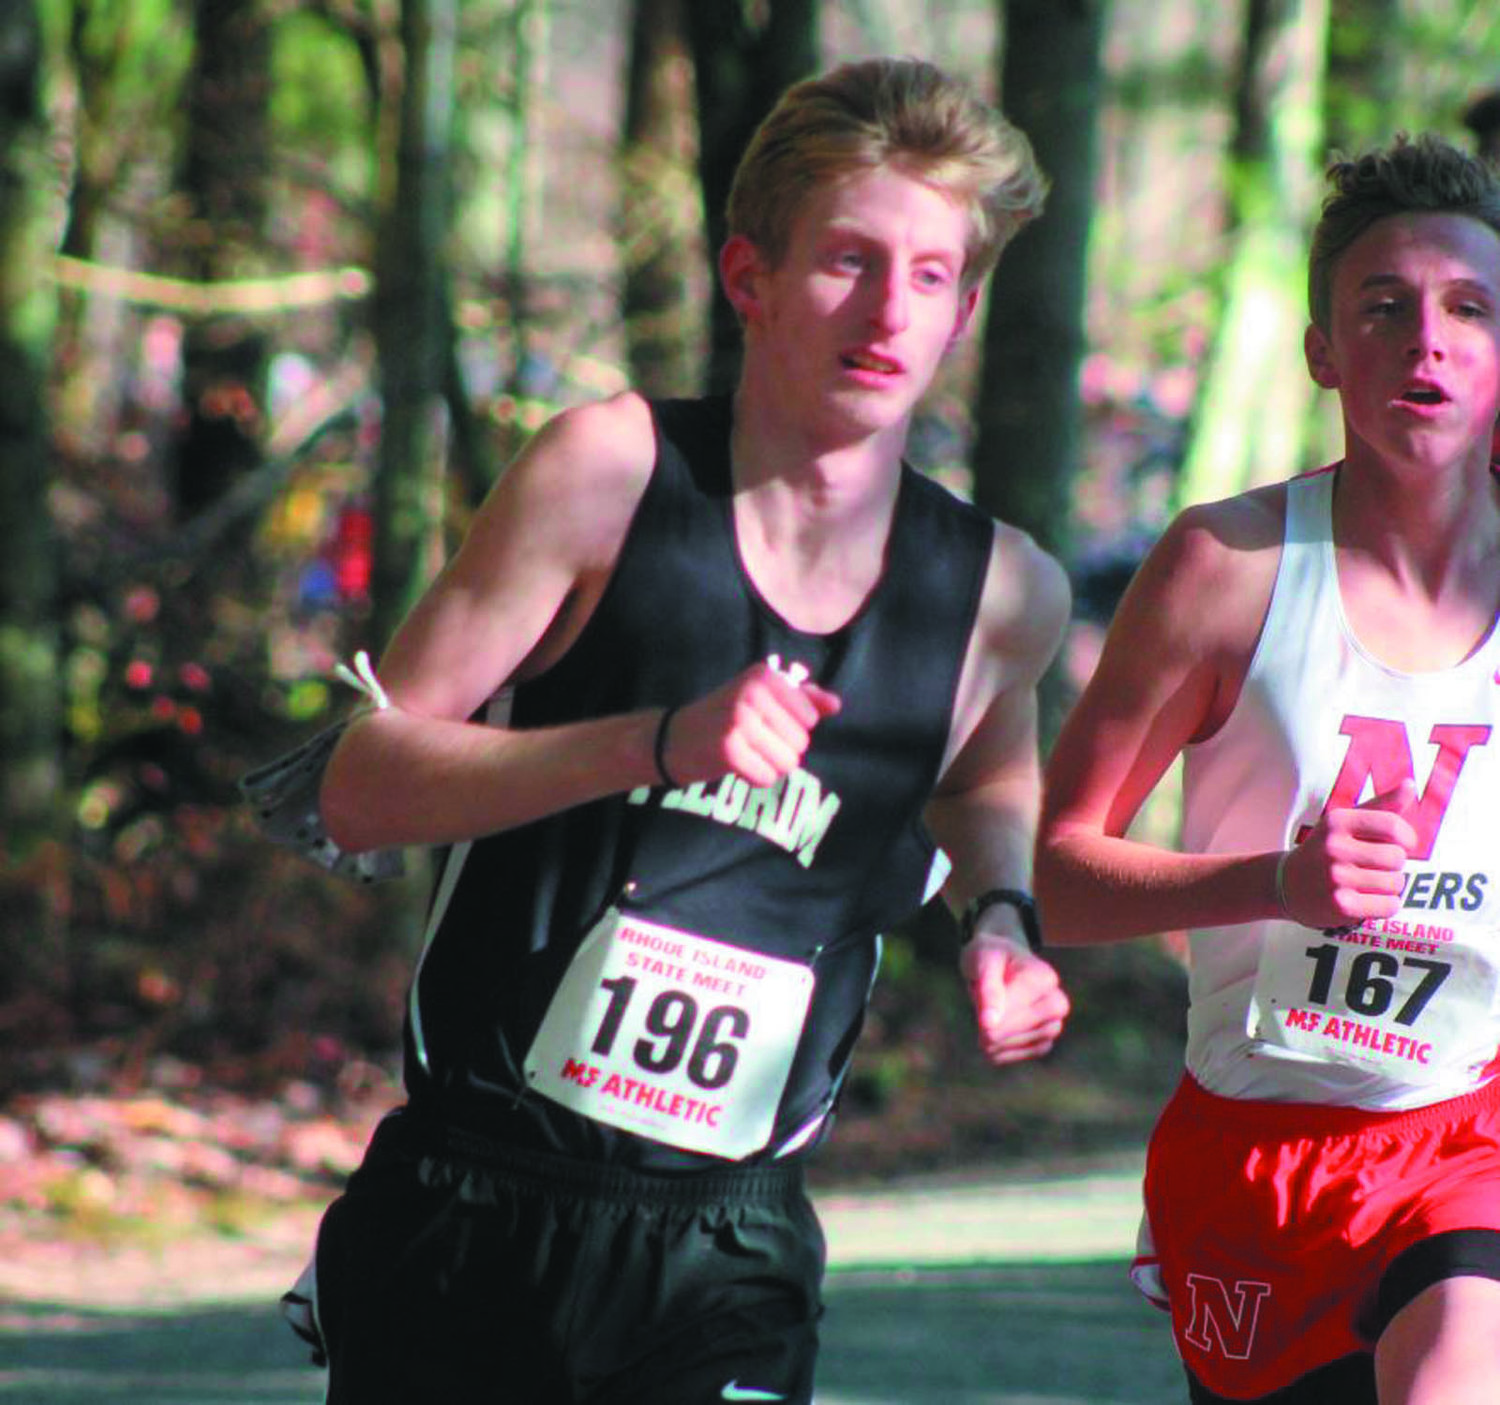 STRONG FINISH: Pilgrim's Justin Dorsey (left) who led the Patriot boys